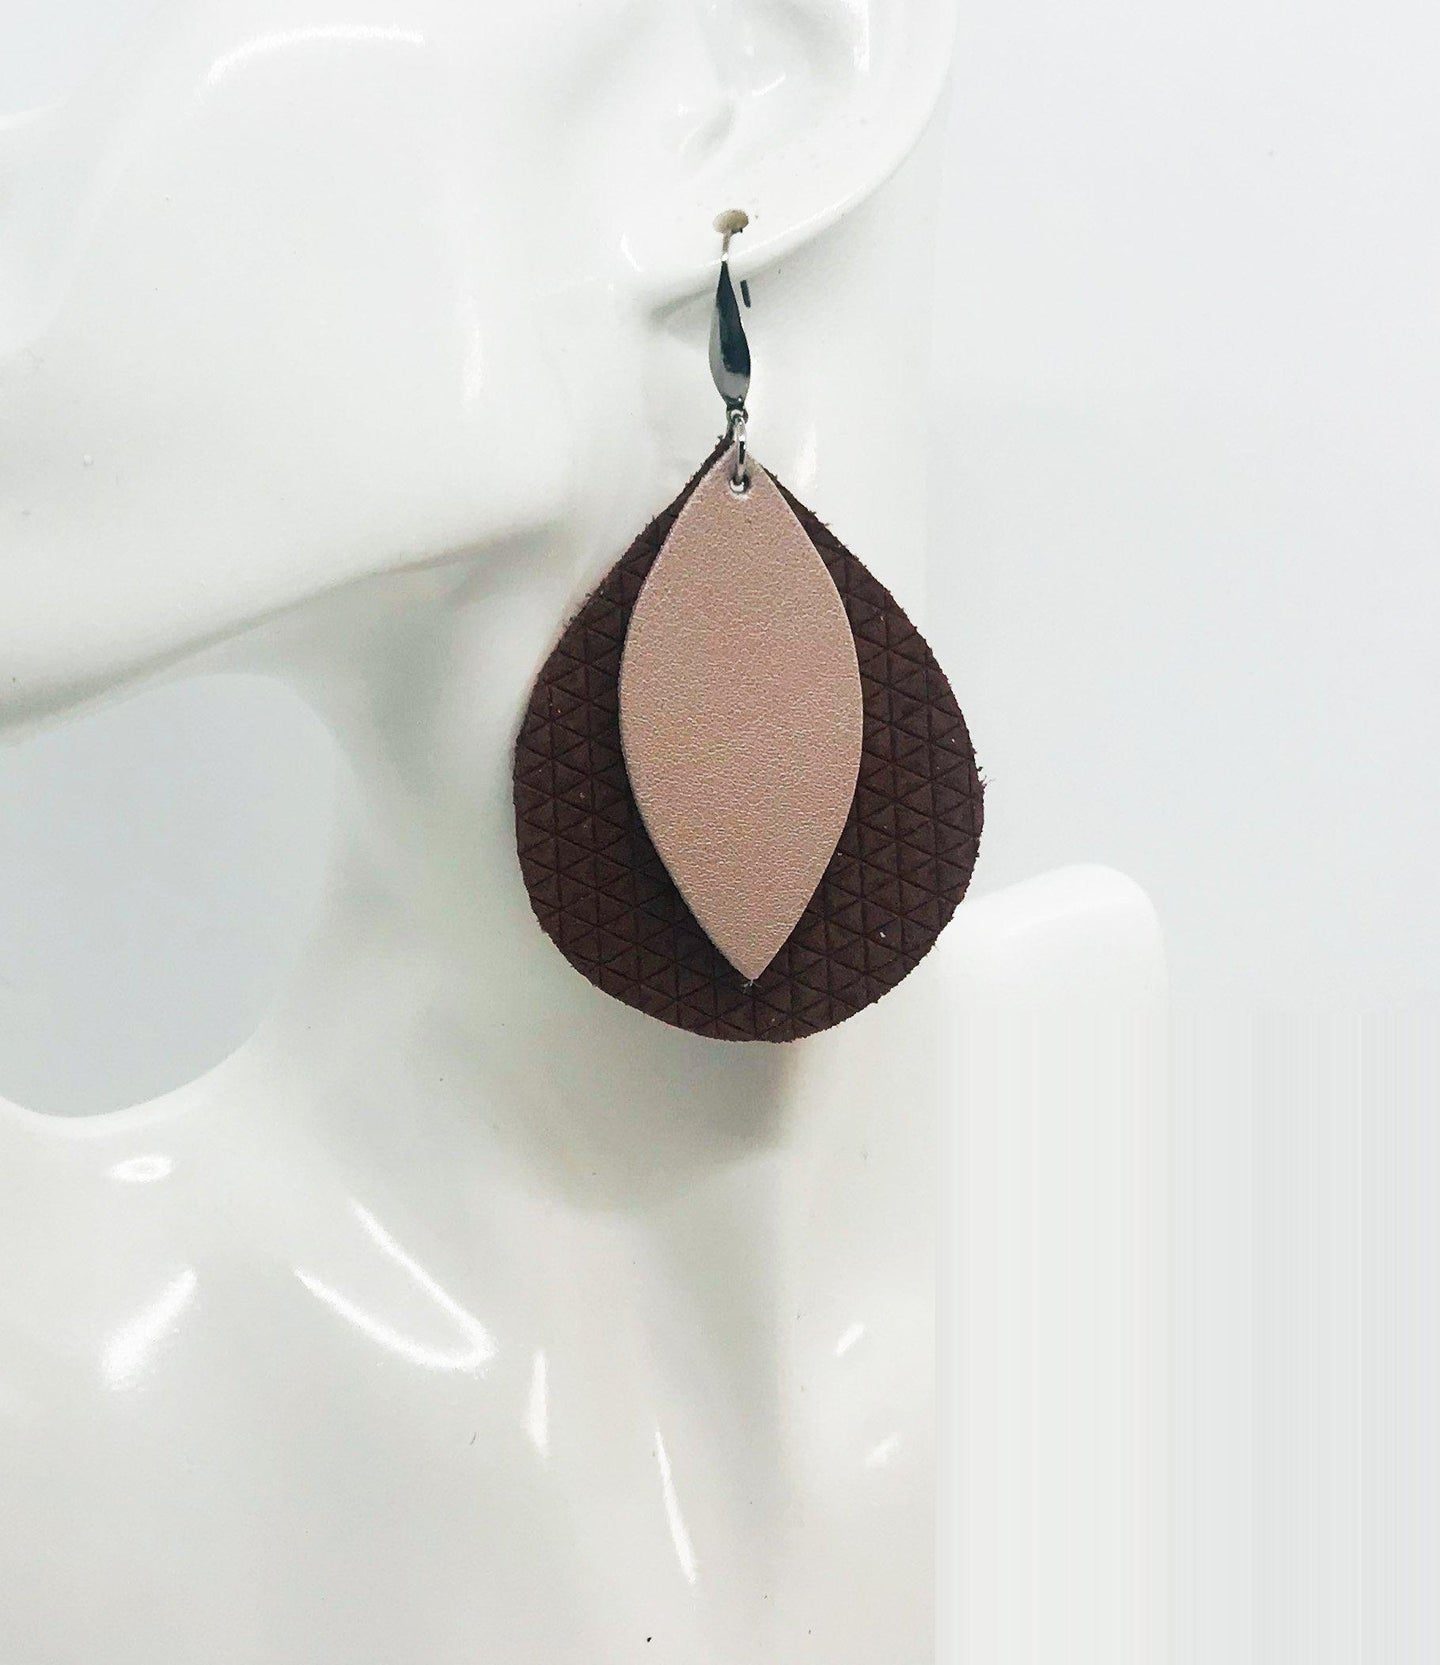 Cinnamon Italian Leather and Rose Gold Leather Earrings - E19-1501